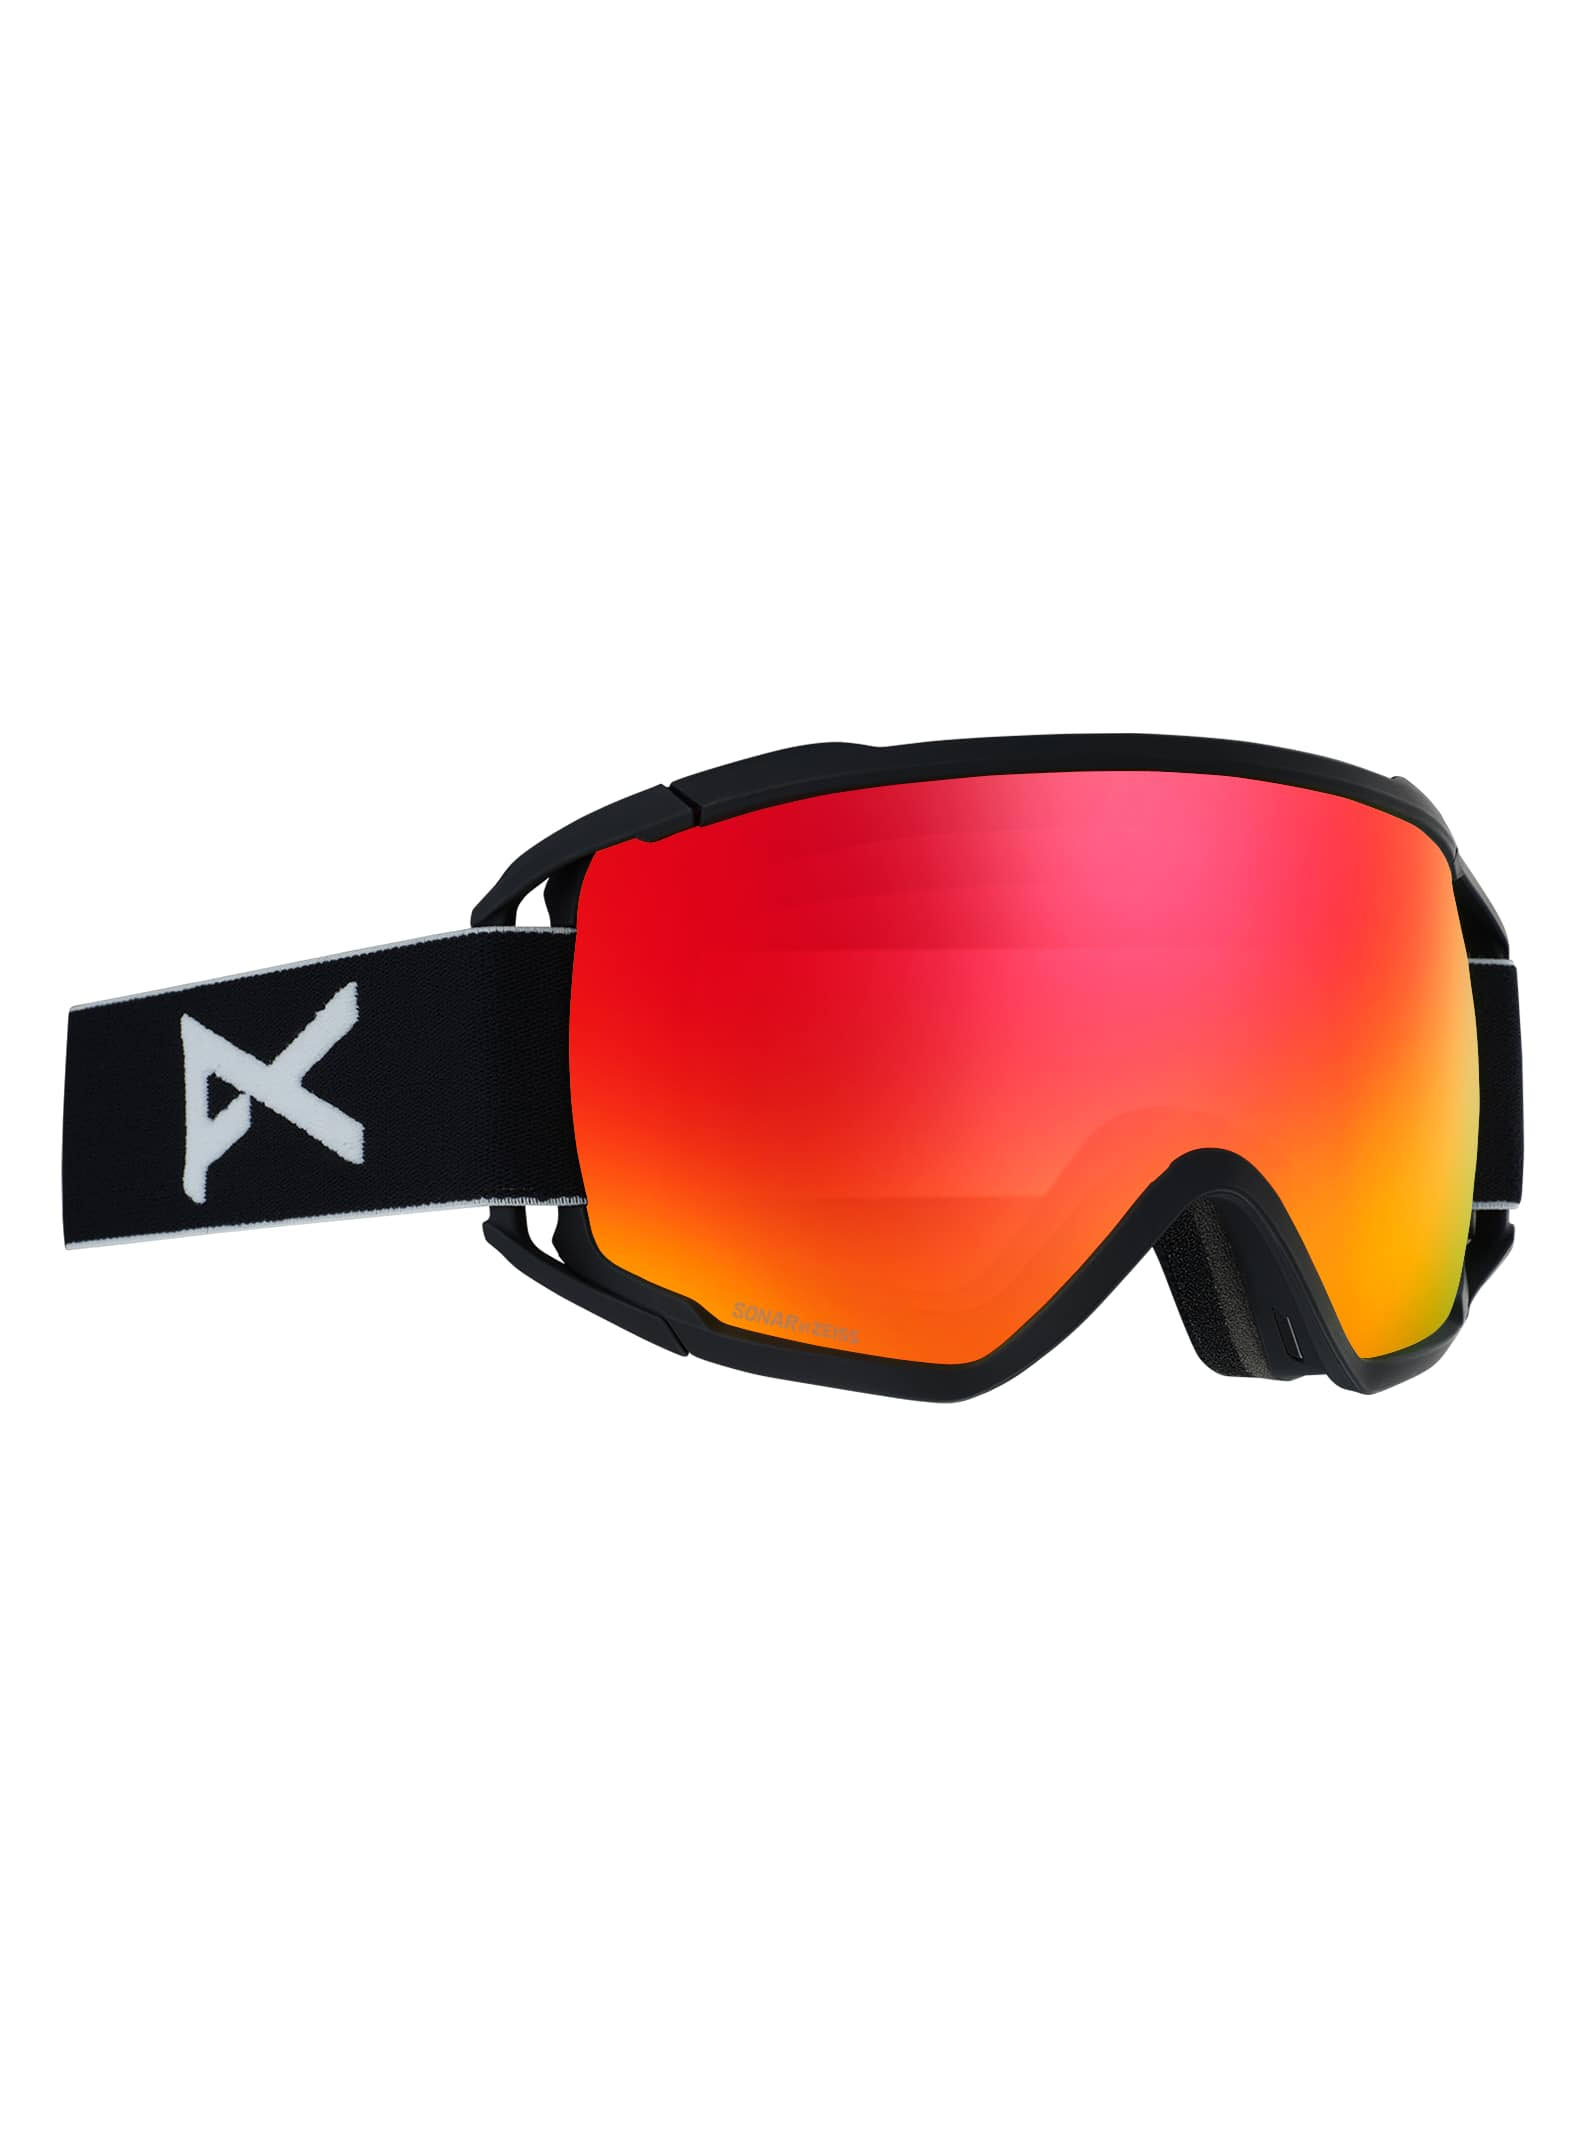 Anon Circuit Goggles - Black and Sonar Red, One Size